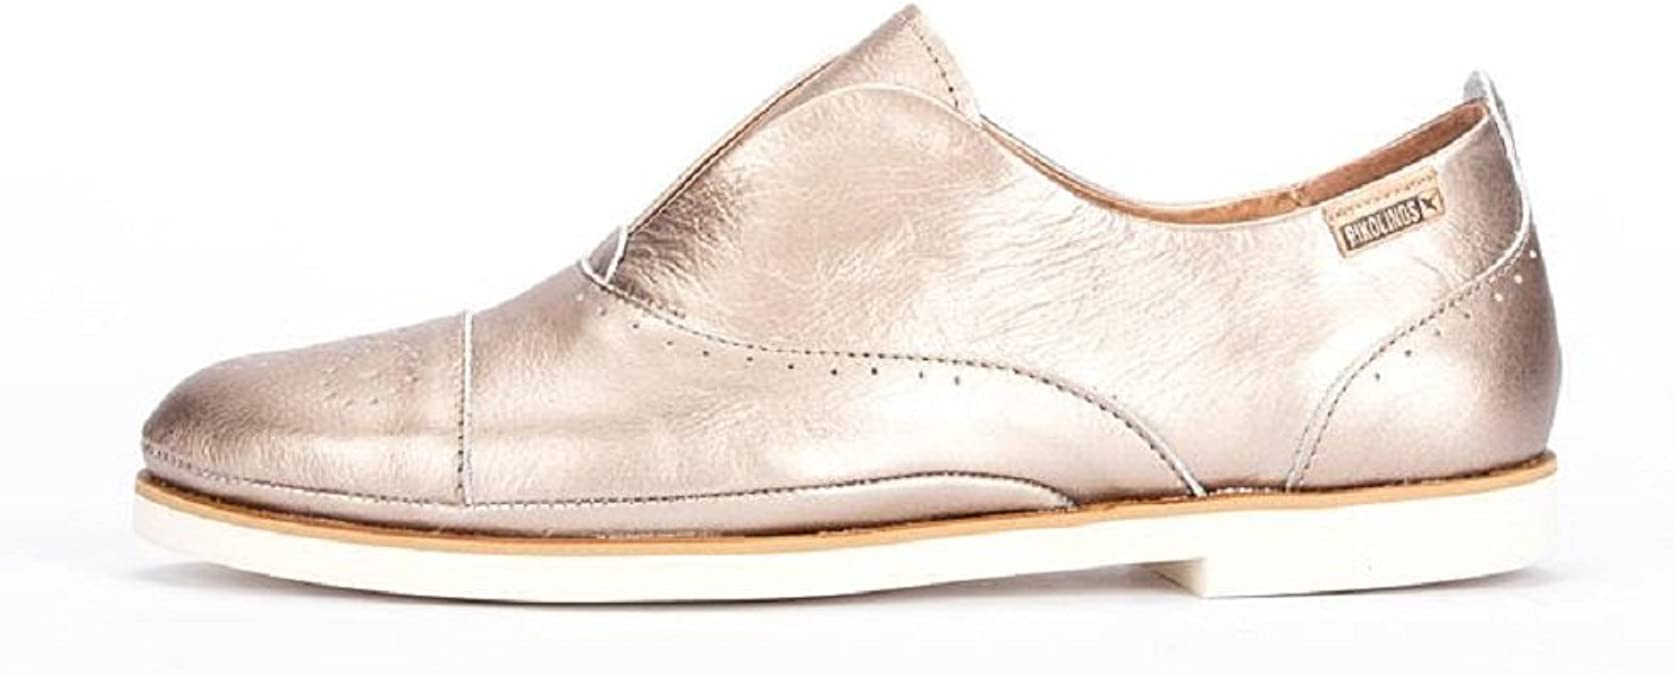 Pikolinos Roma W1R-4682 Chaussures Basses Femme